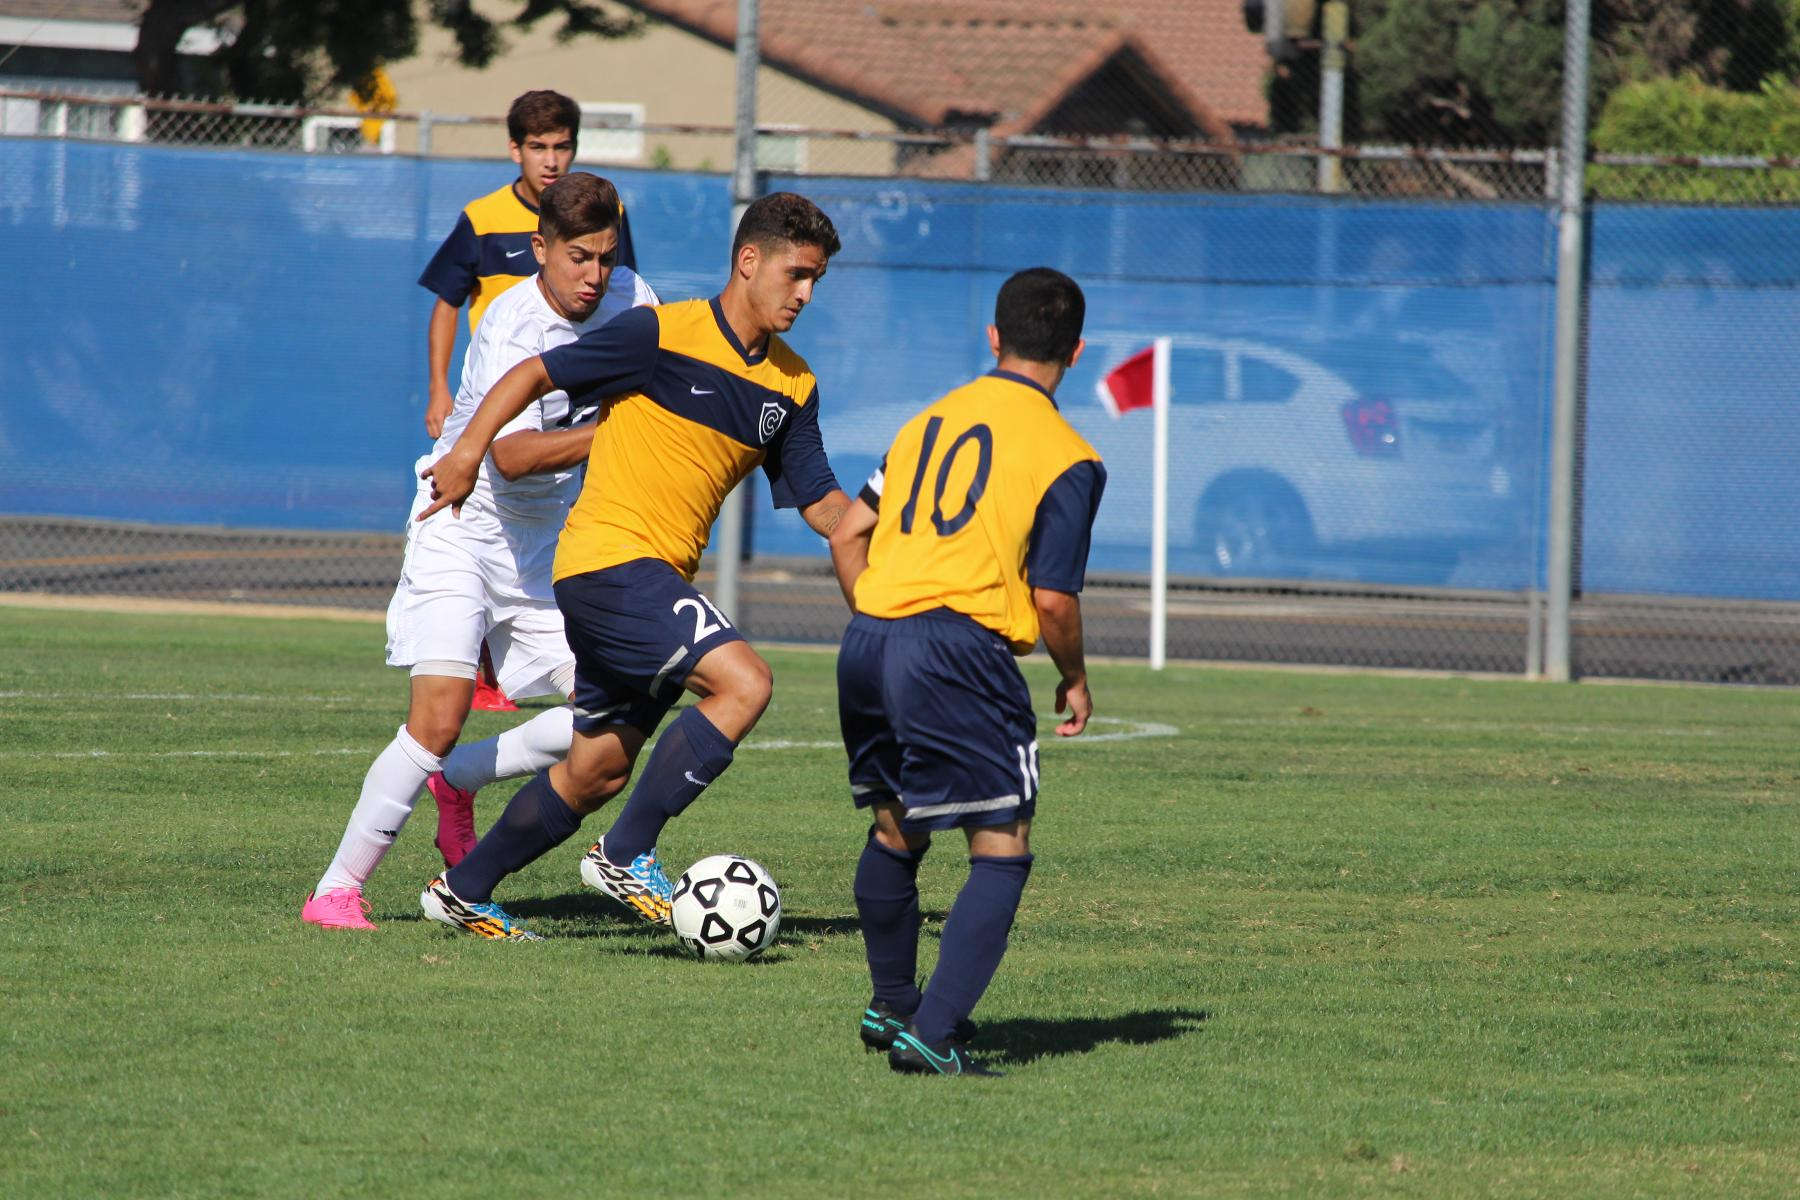 Chargers Fall 2-1 in Conference Opener